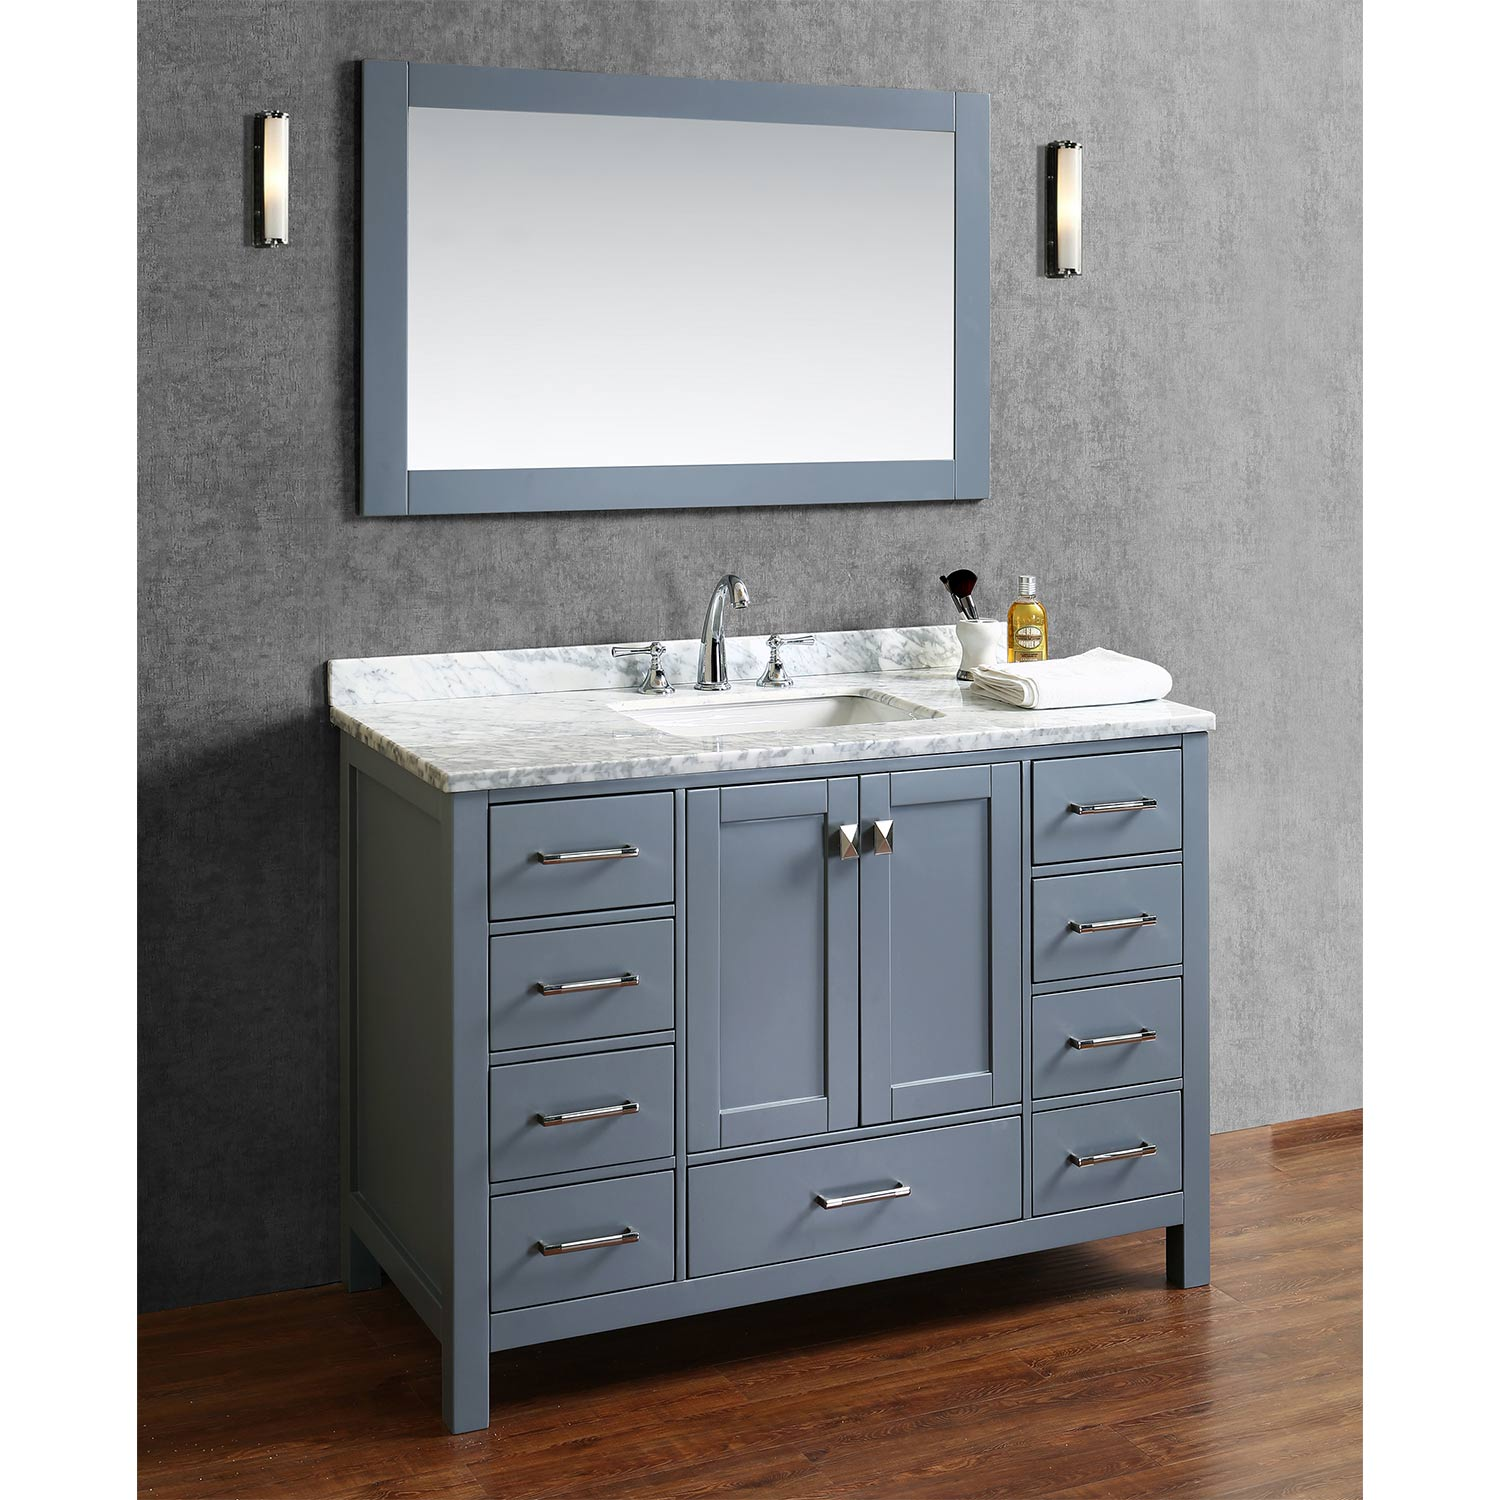 48 Inch Bathroom Vanity With Sink. Vincent 48  Solid Wood Single Bathroom Vanity in Charcoal Grey HM 13001 WMSQ CG Buy Inch